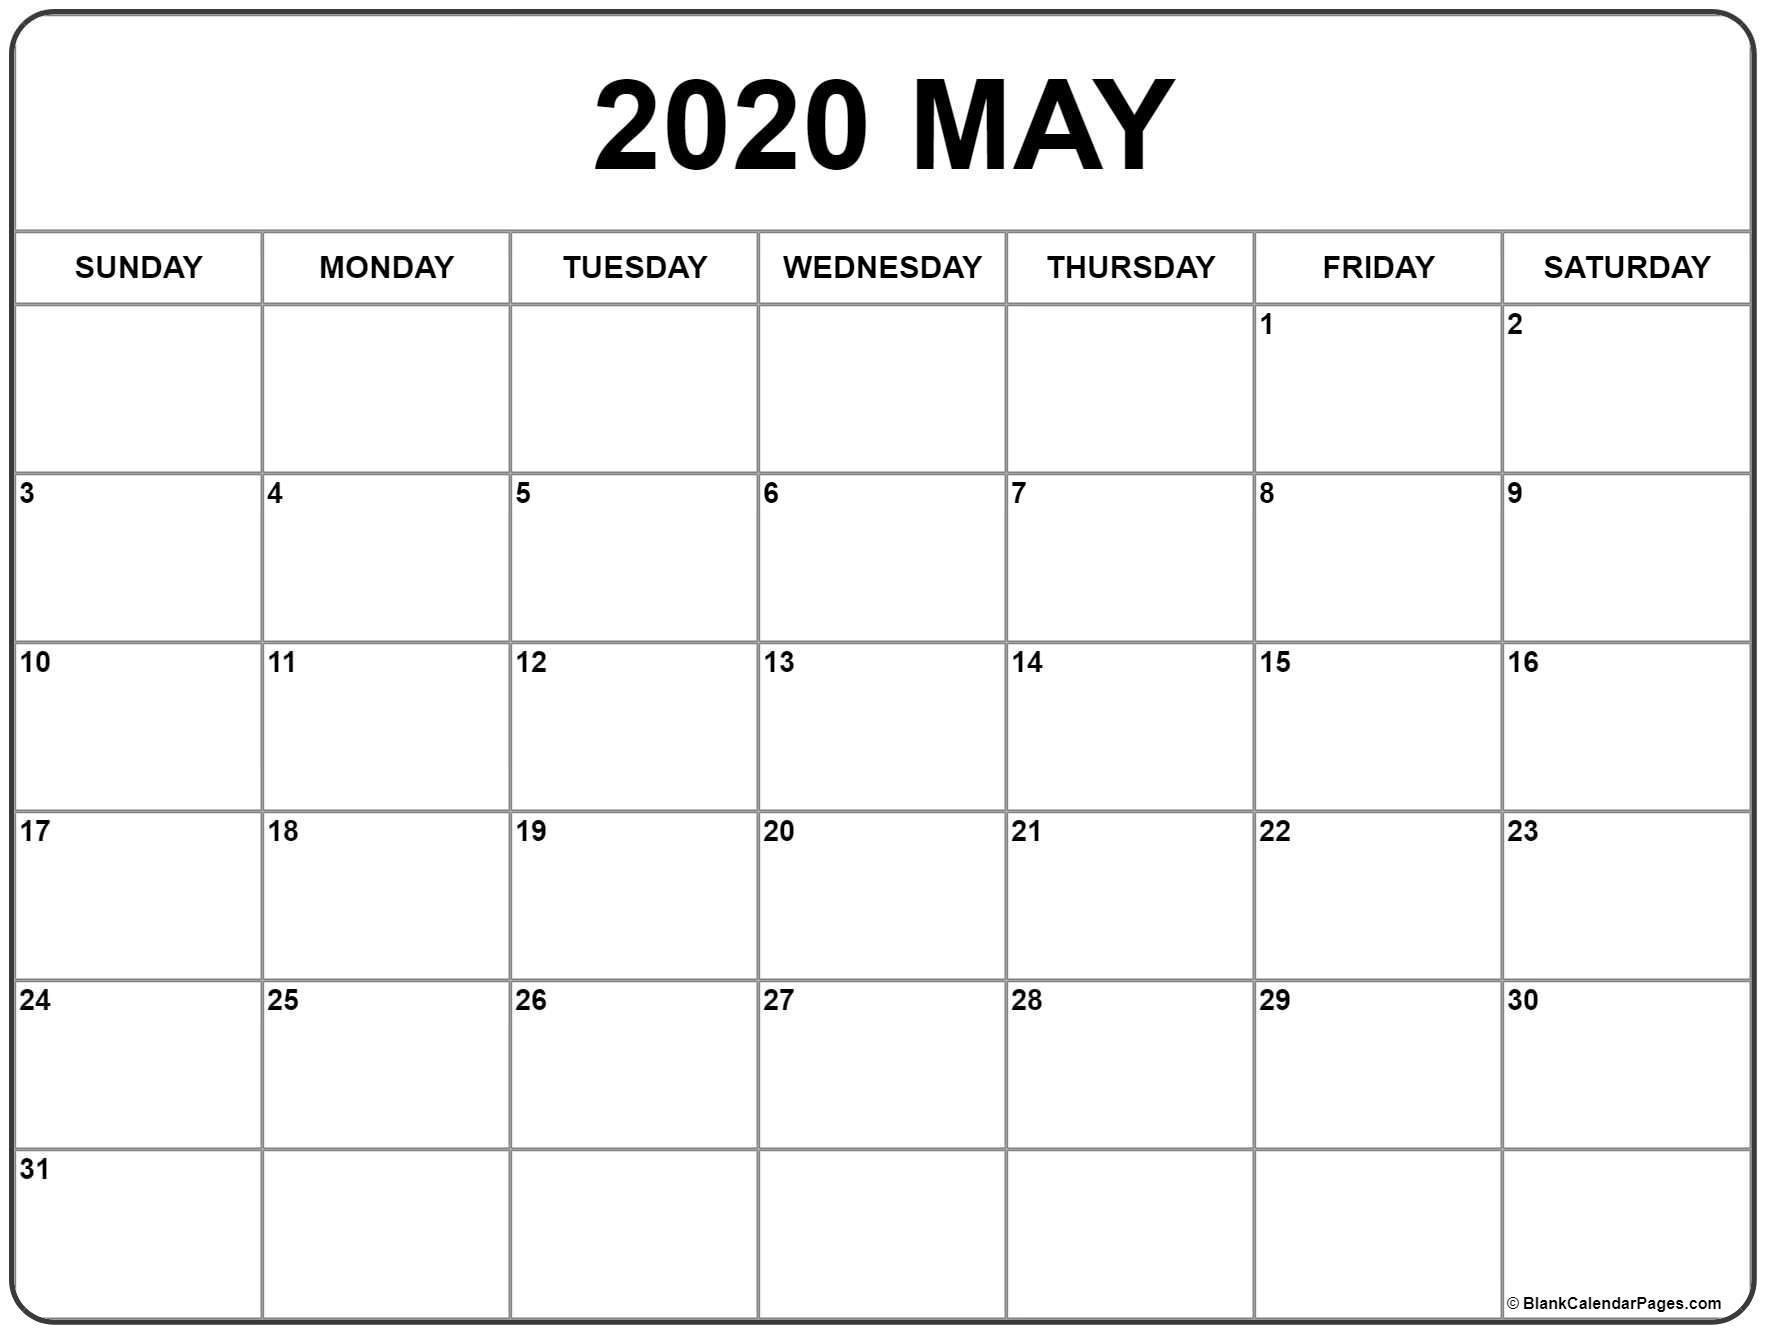 May 2020 Calendar | Free Printable Monthly Calendars  Free Online Calendars 2020 Printable